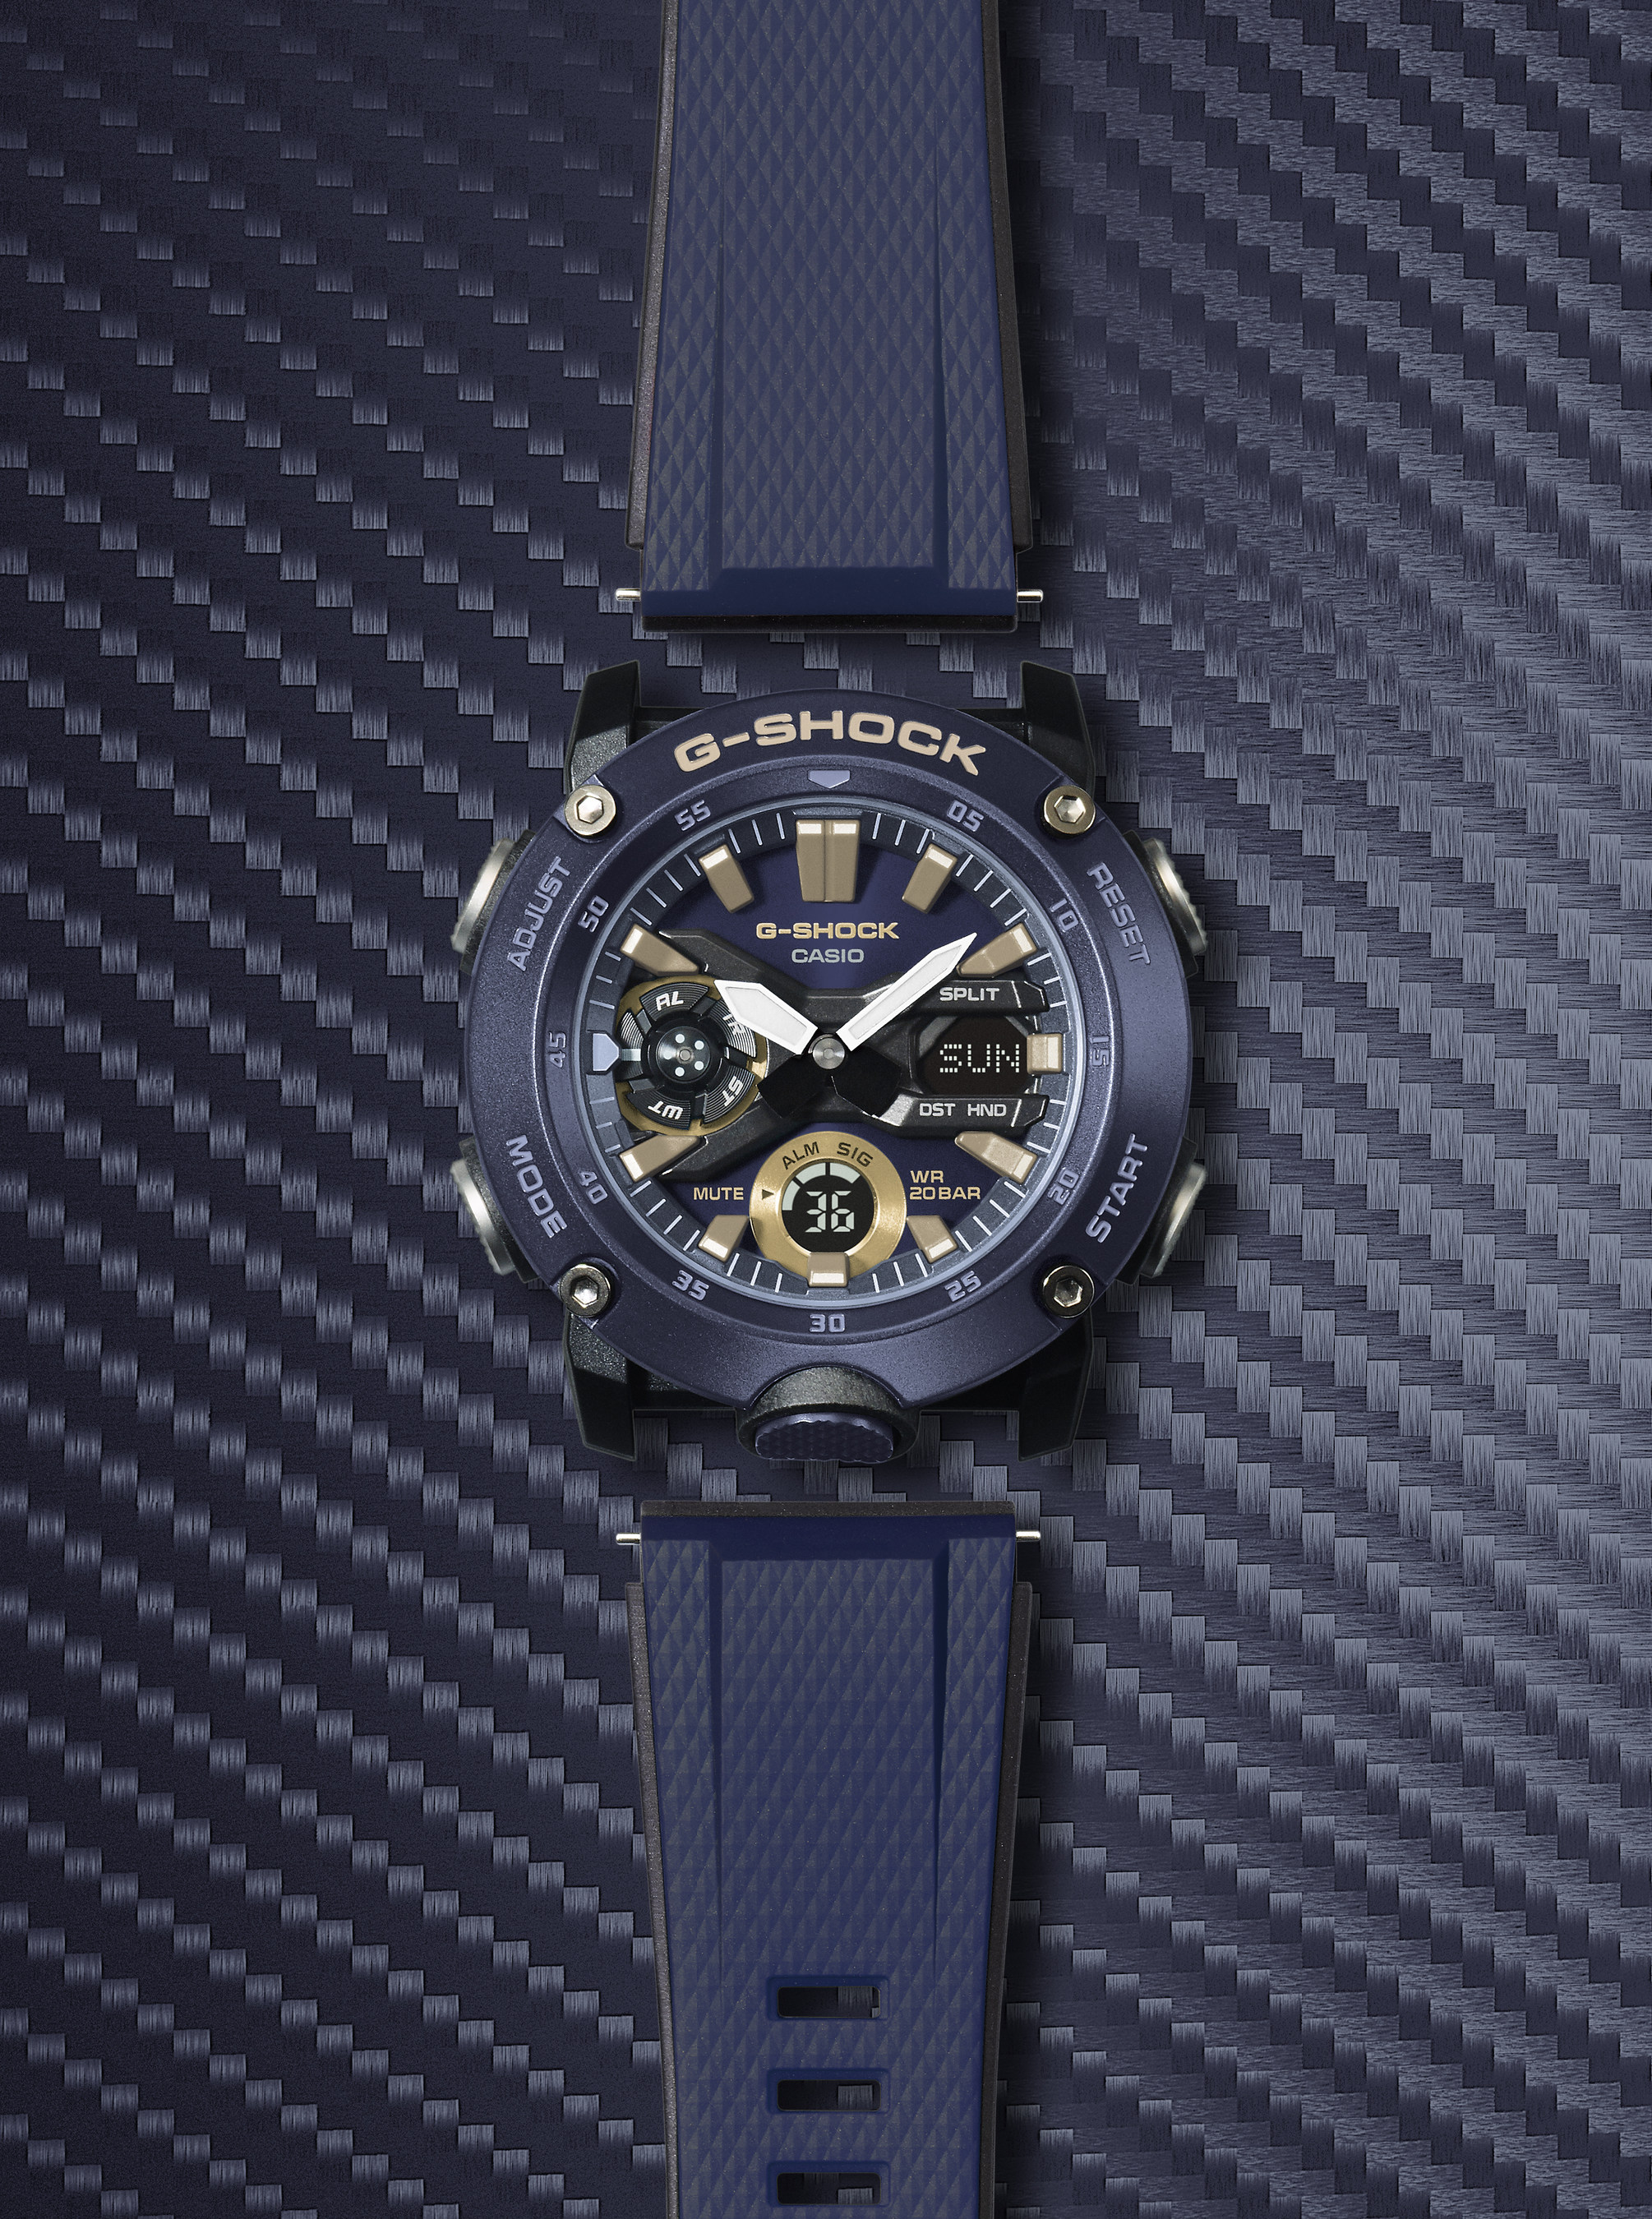 2297229b9dc1 Casio G-SHOCK Introduces New GA2000 Watch At Baselworld 2019 ...